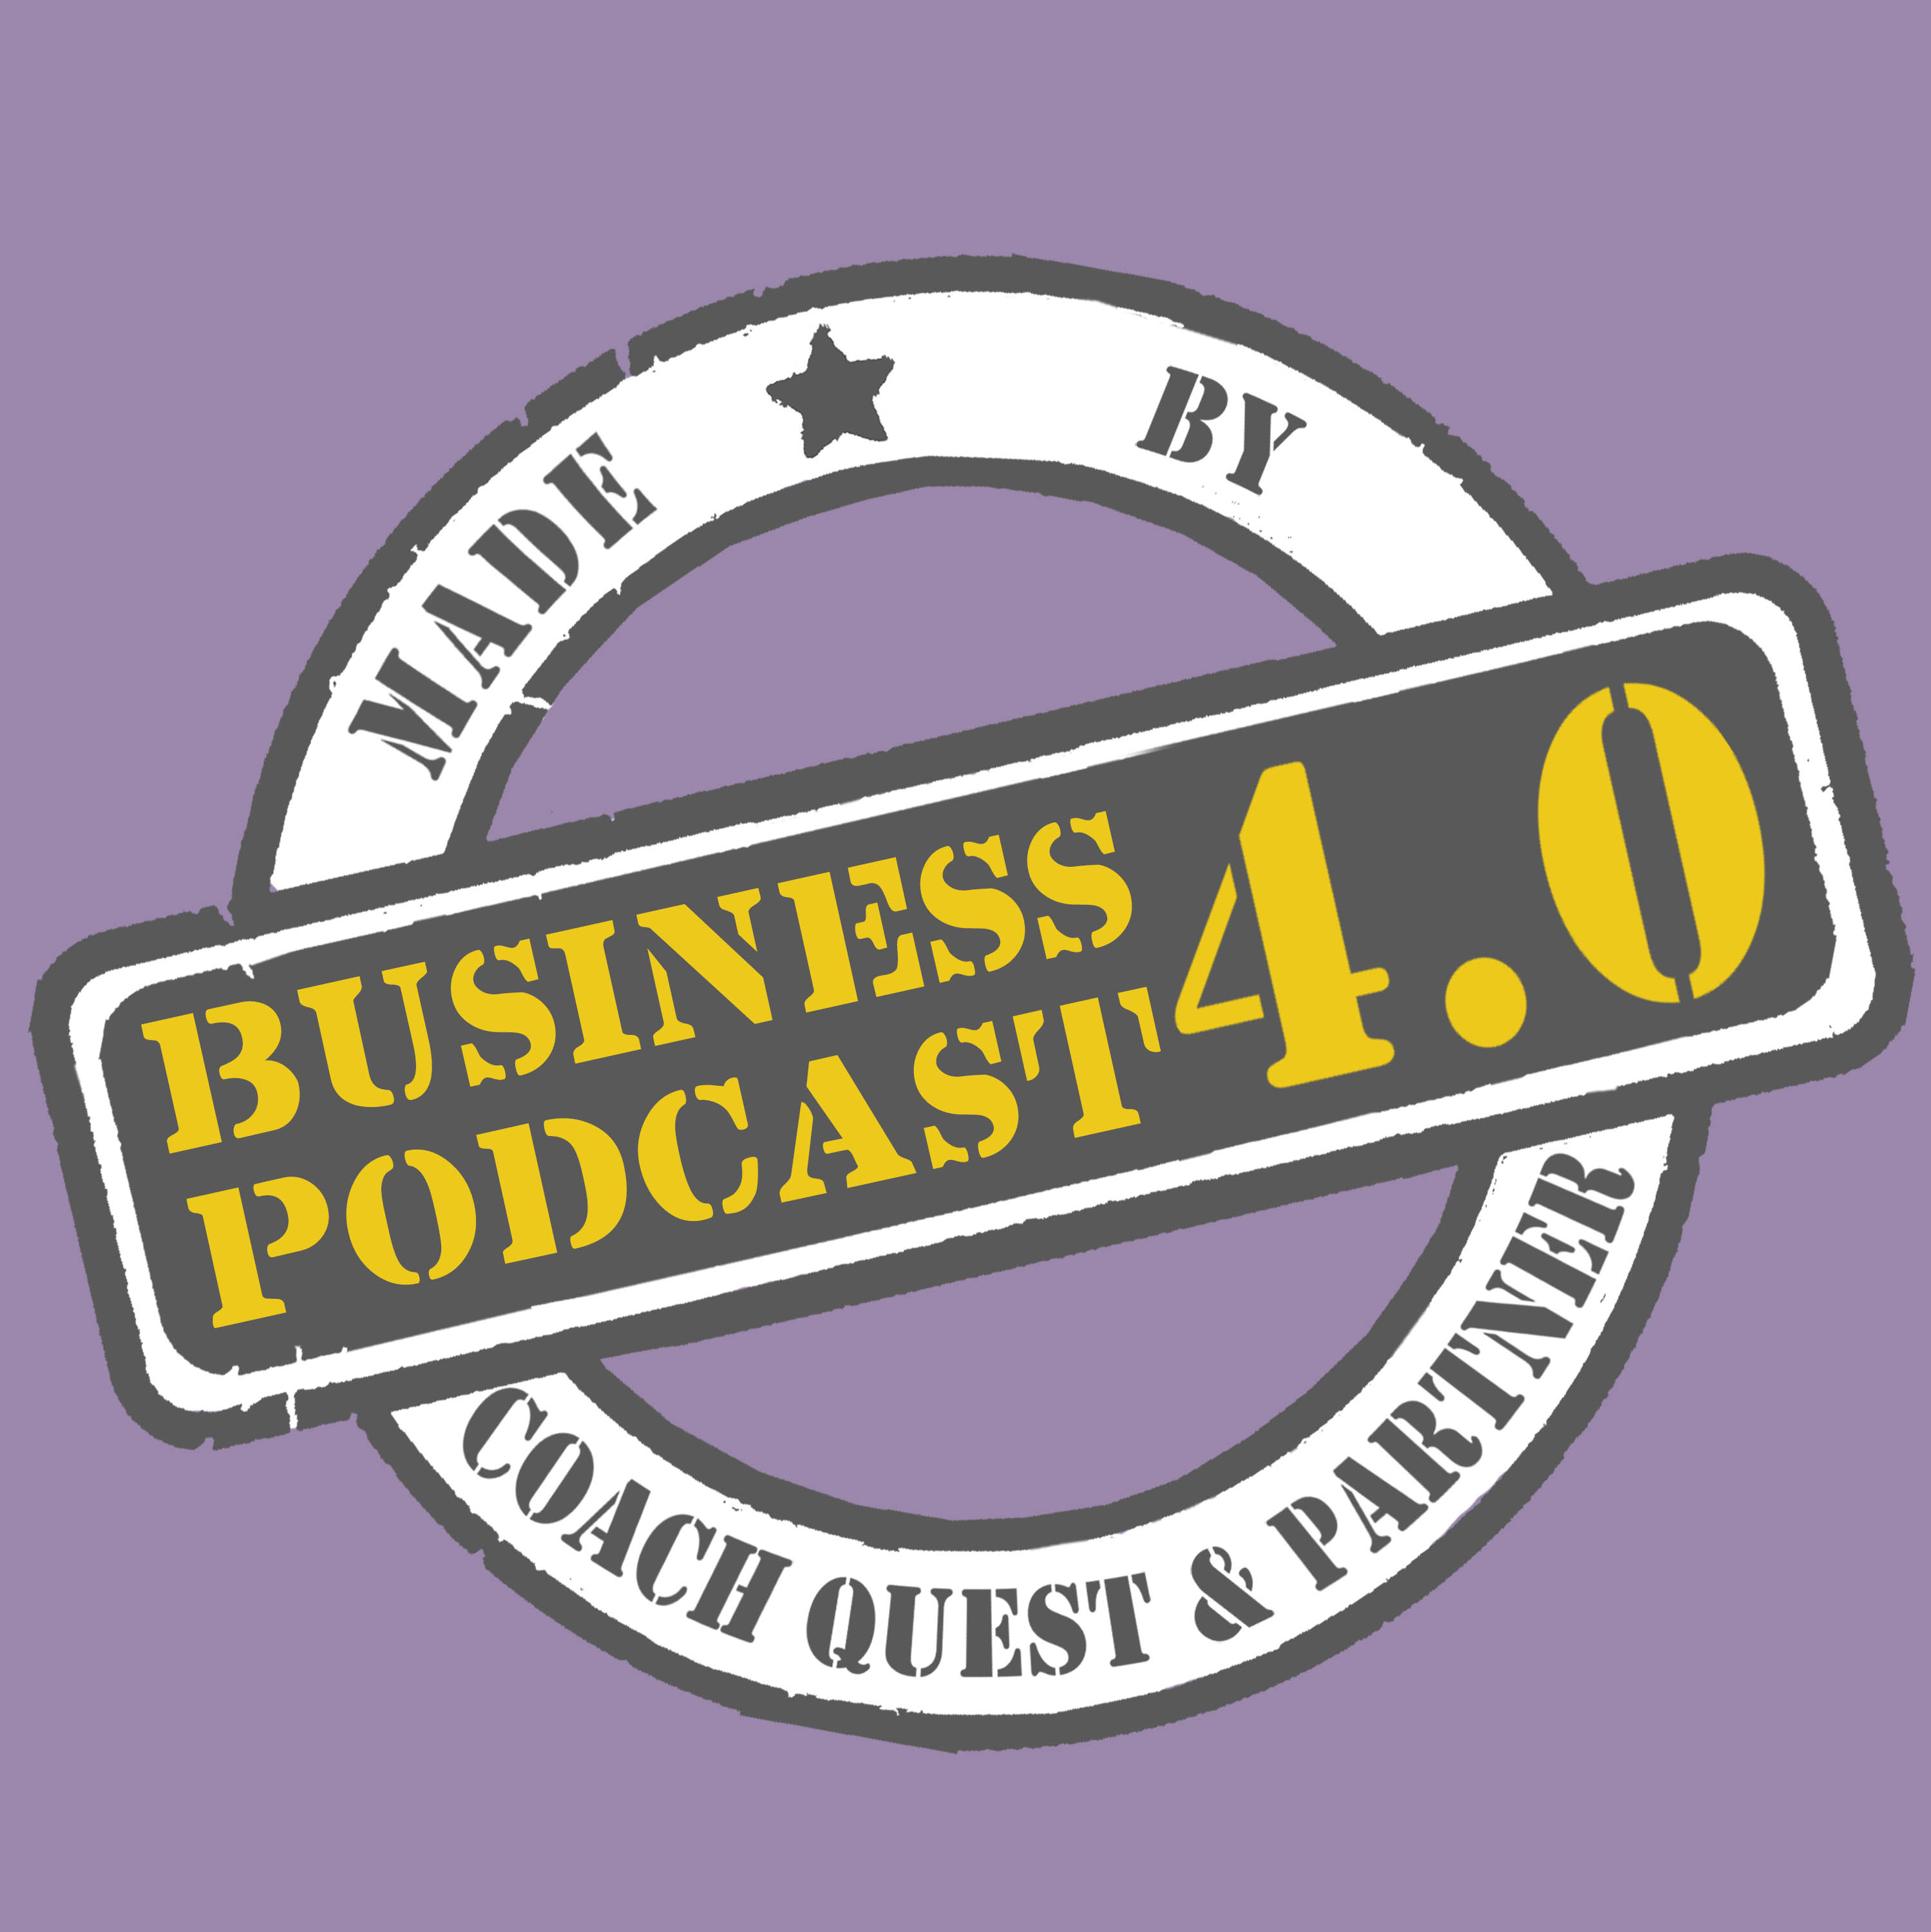 Business Podcast 4.0